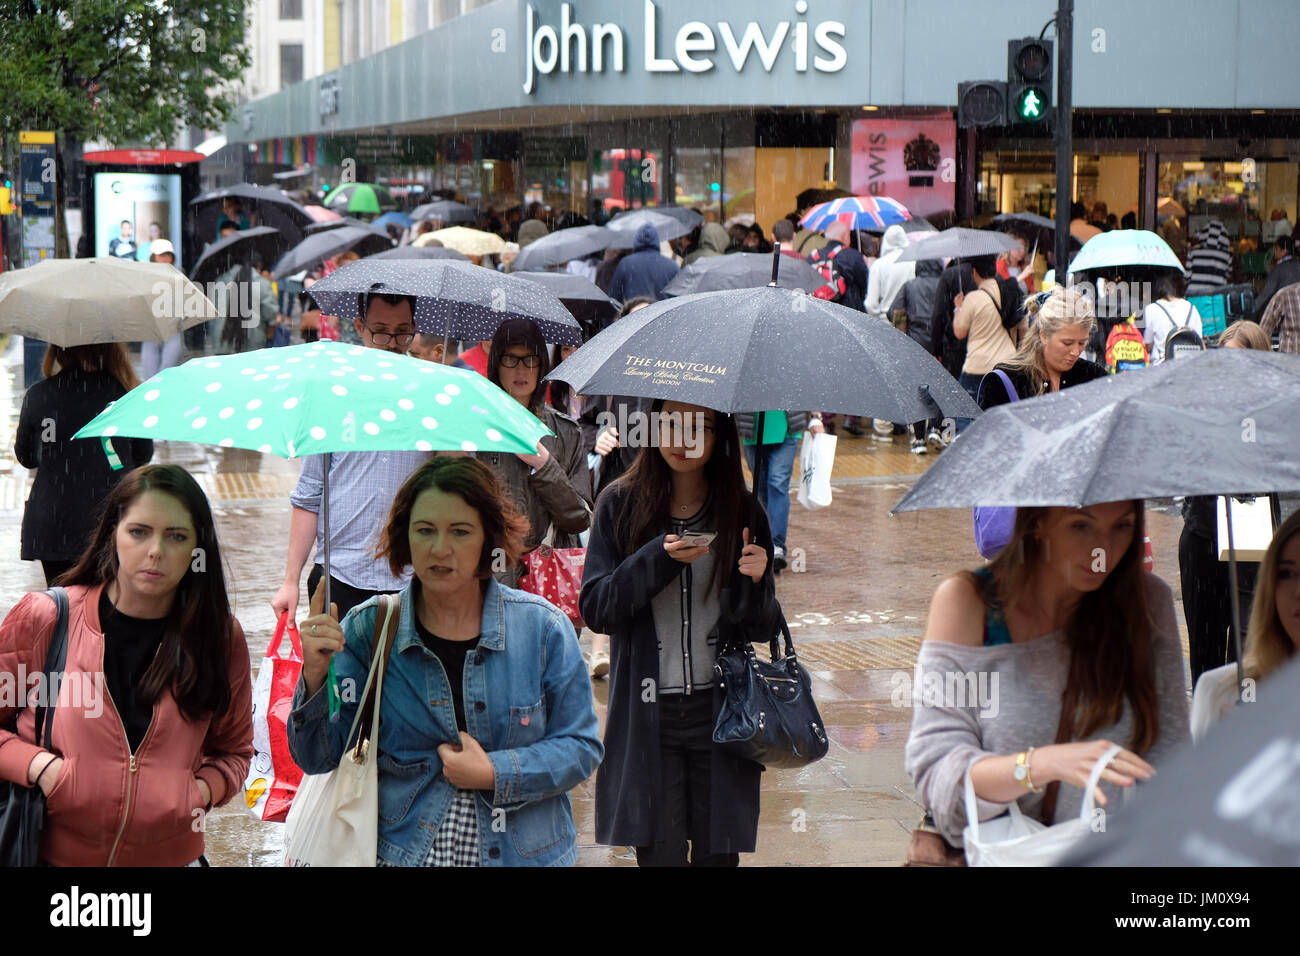 Pix shows: Wet summer in London. Rain battered shopper in Oxford Street near John Lewis store.     Pic by Gavin - Stock Image